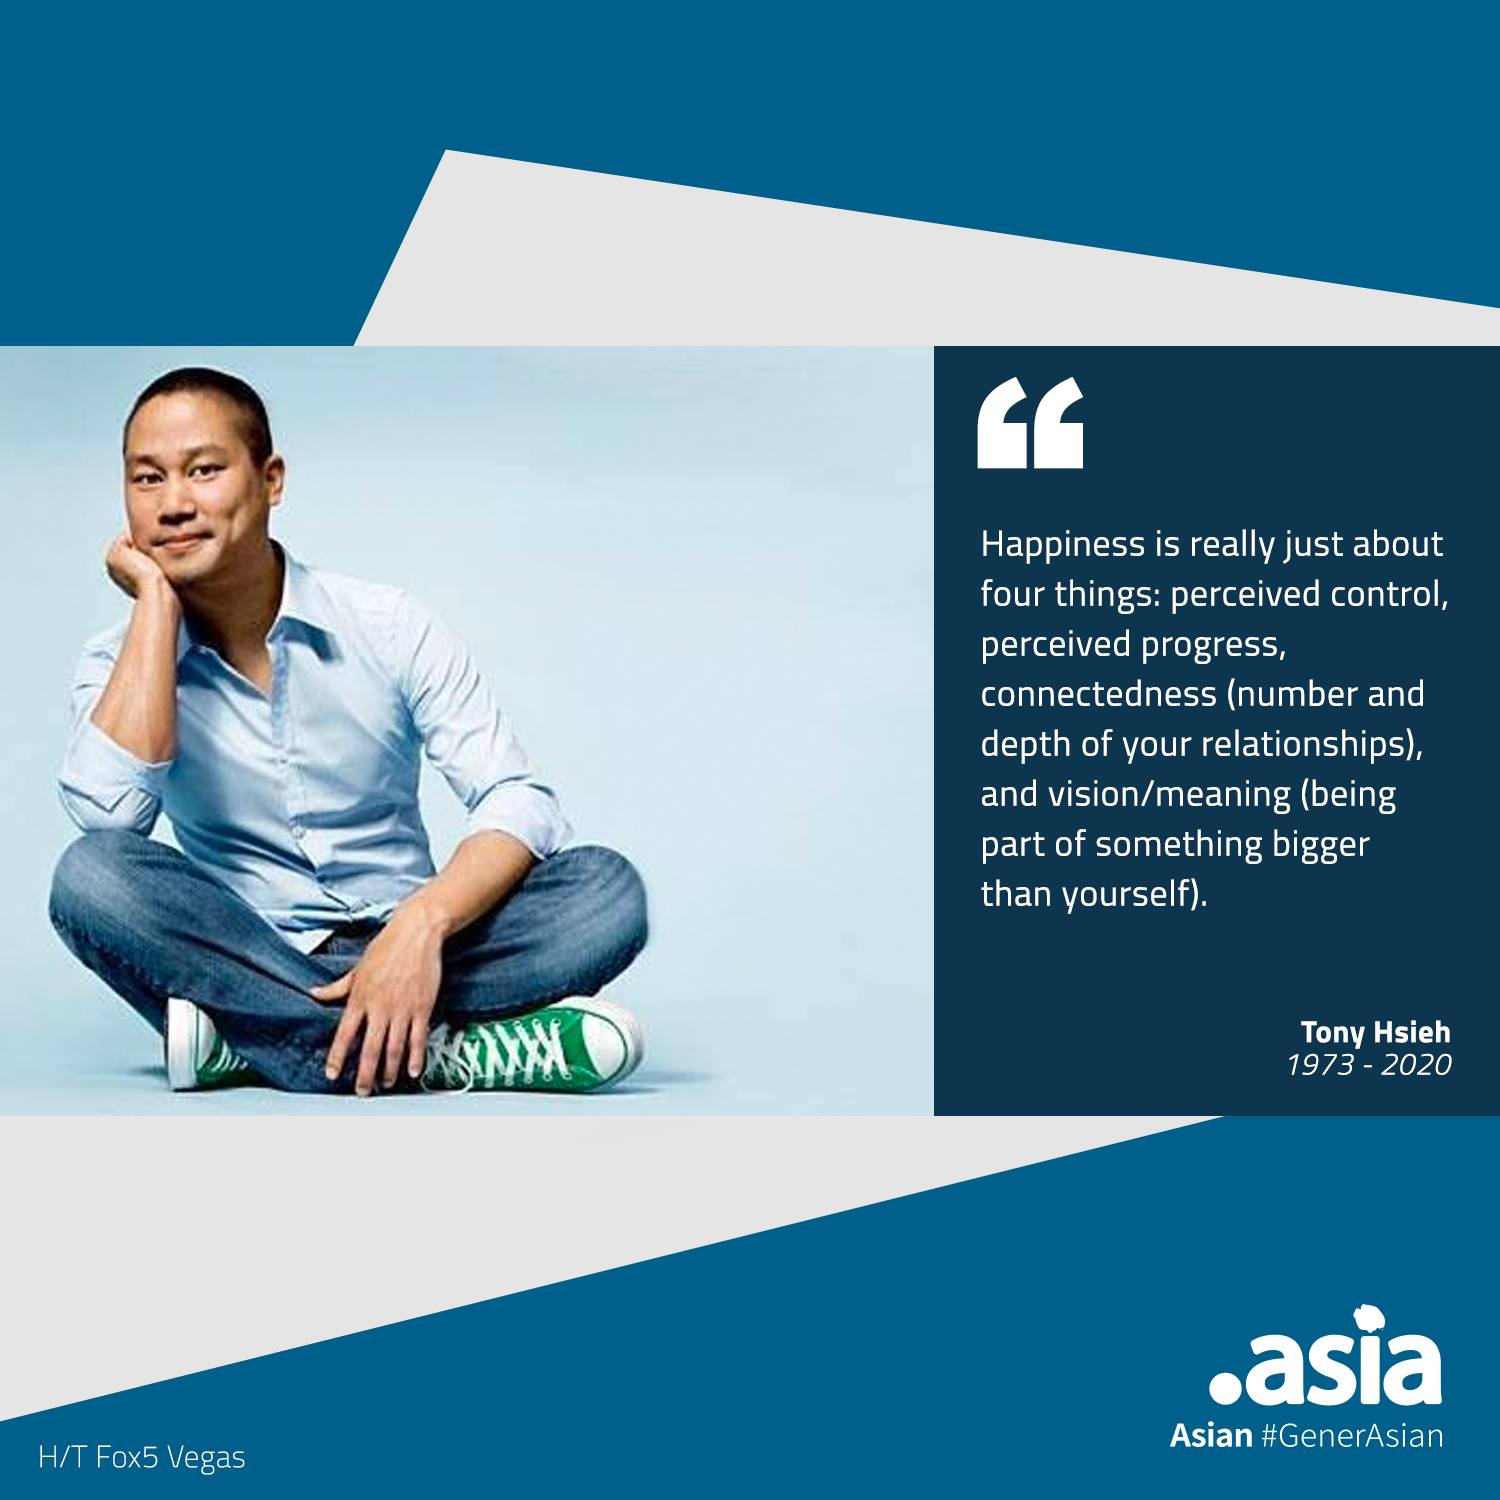 Tony Hsieh tribute